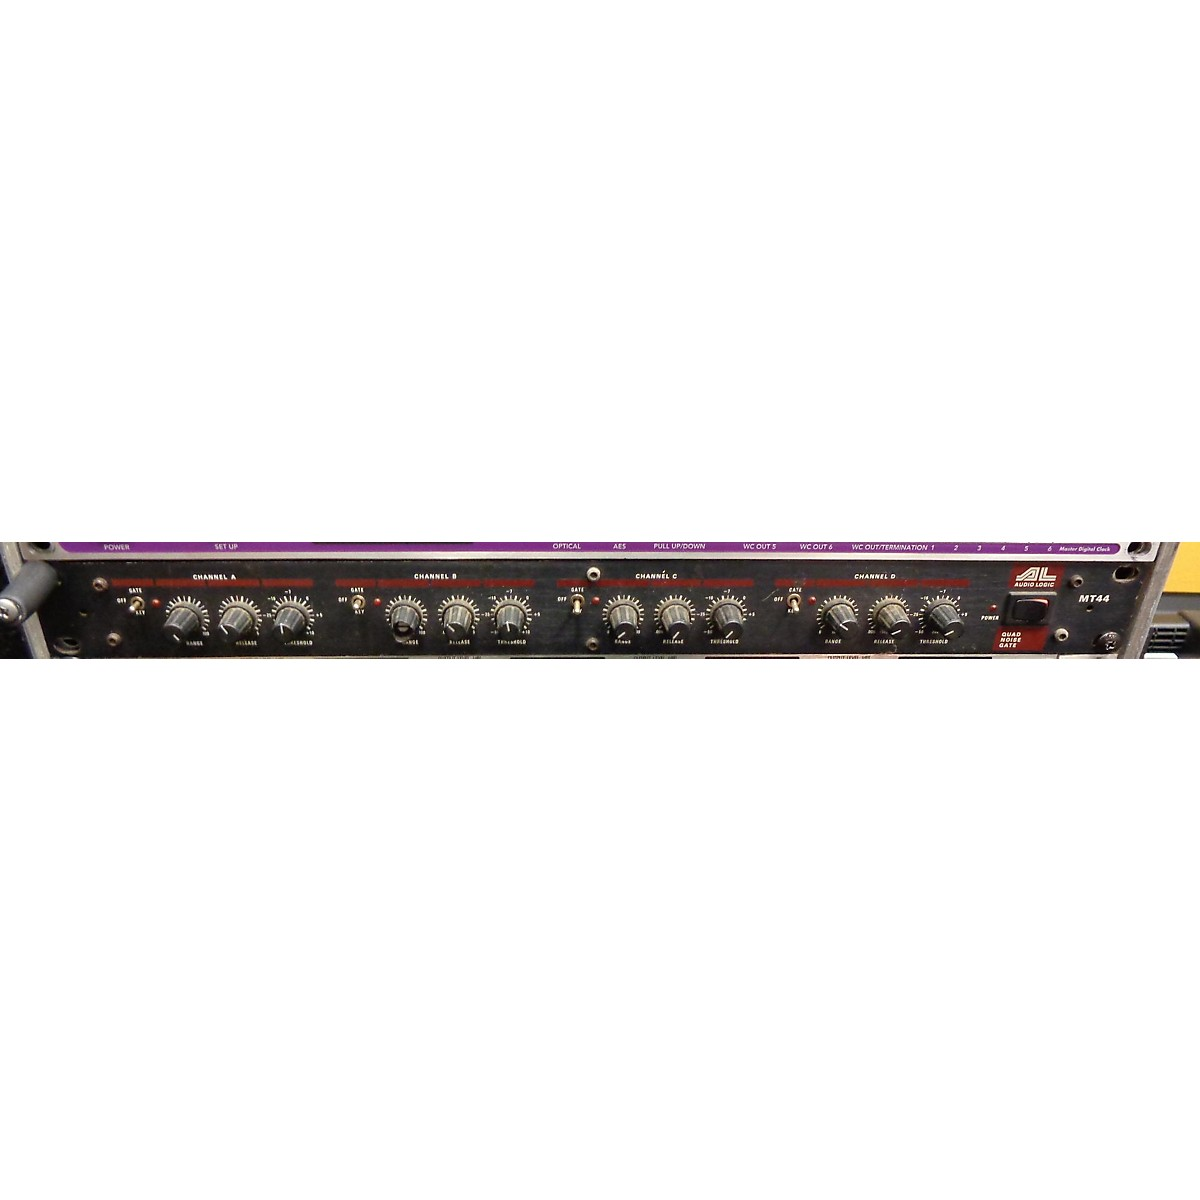 AUDIO LOGIC MT44 Quad Noise Gate Noise Gate